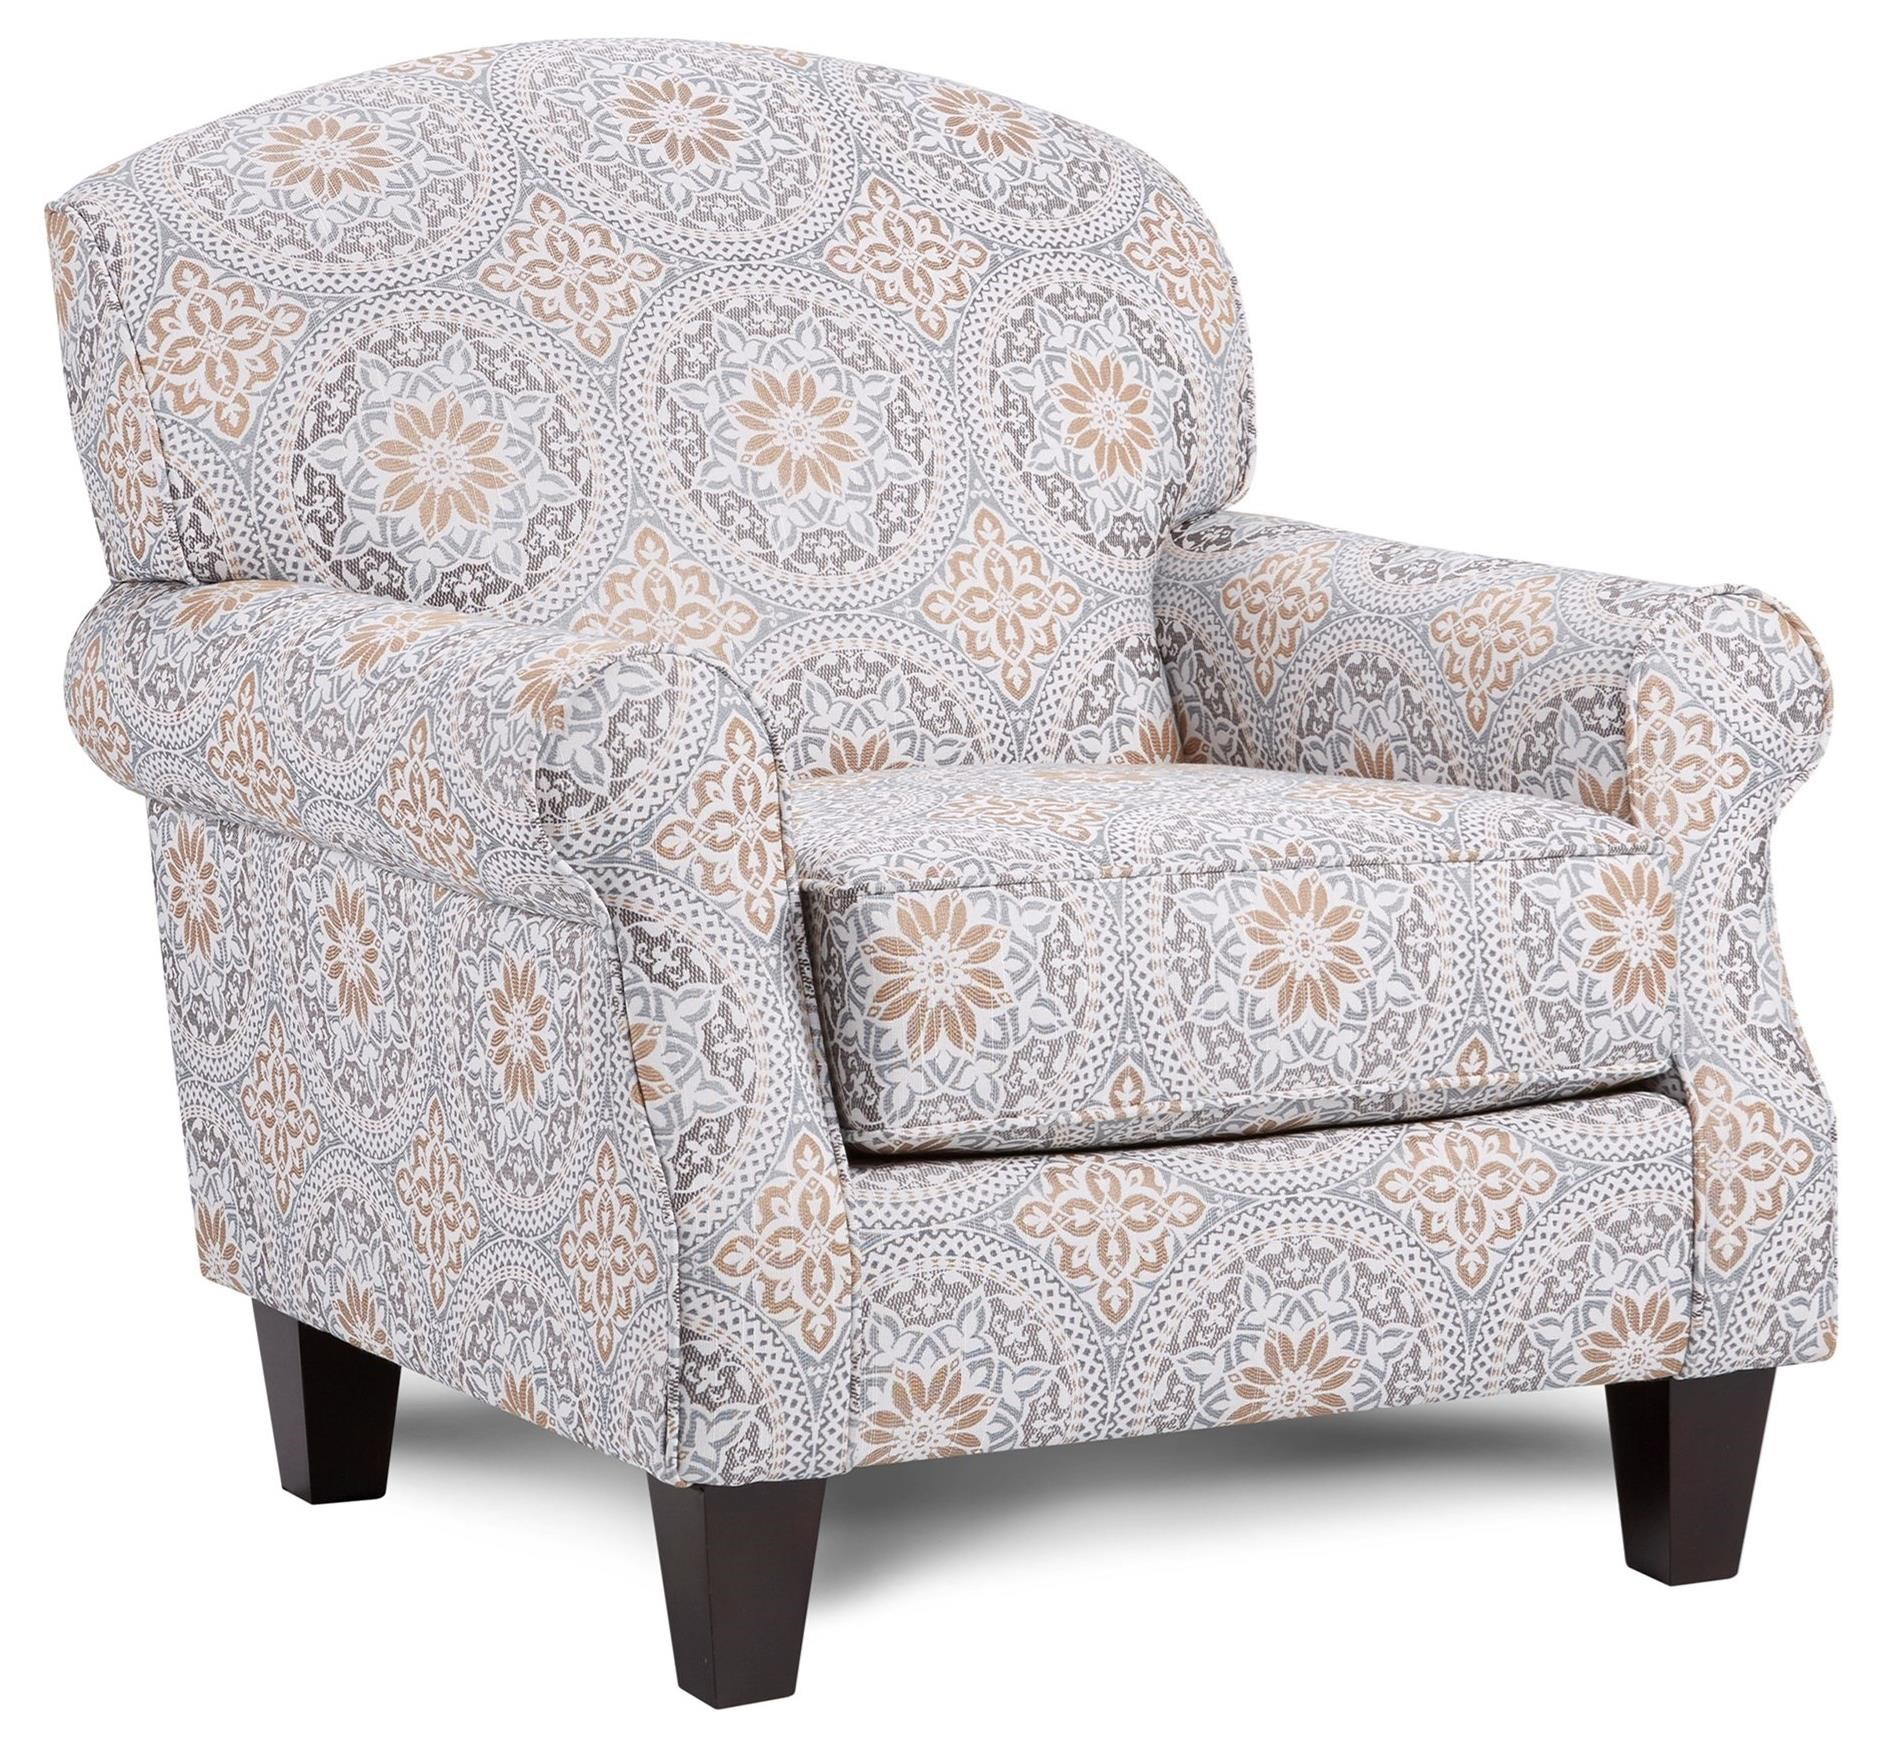 532 Accent Chair by Fusion Furniture at Prime Brothers Furniture